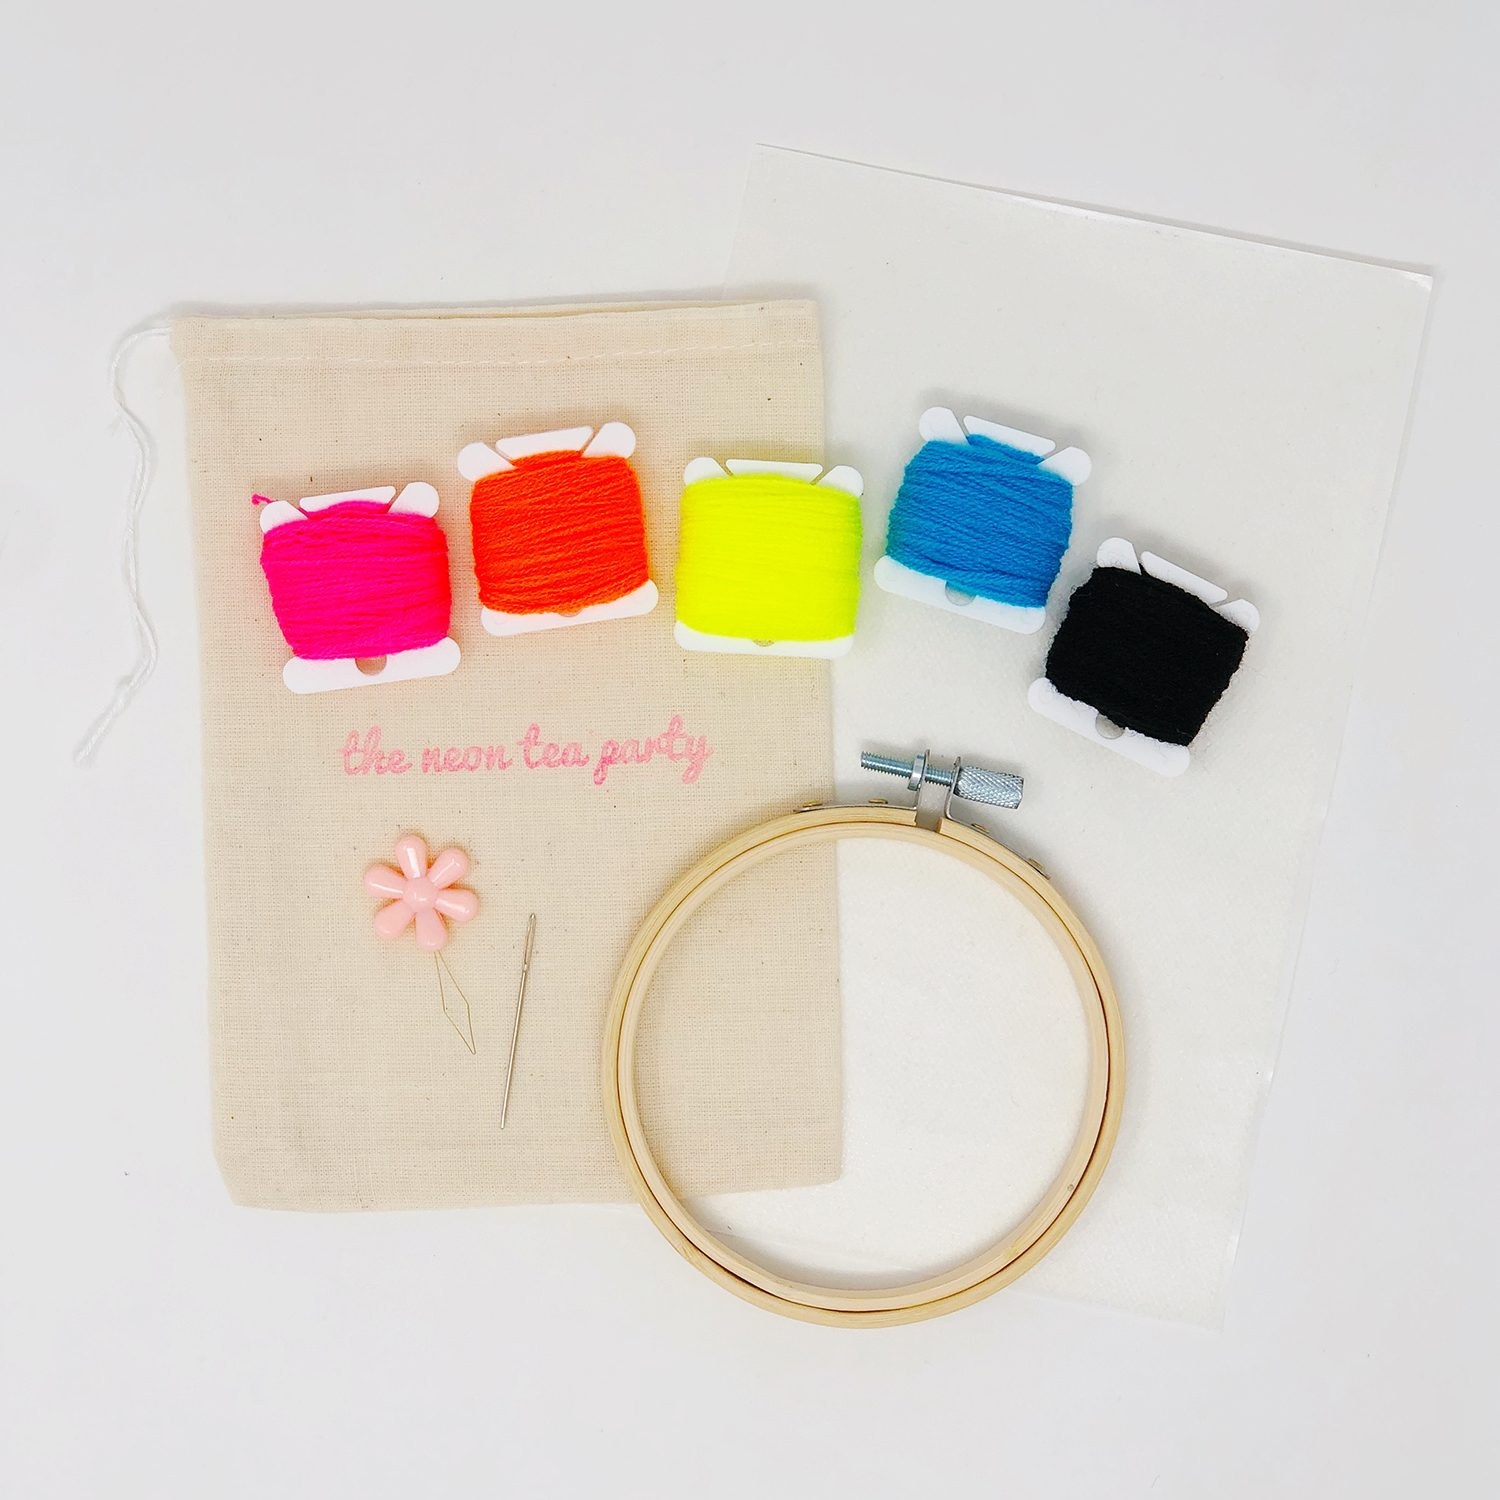 The Neon Tea Party - Classic Embroidery Kit 1